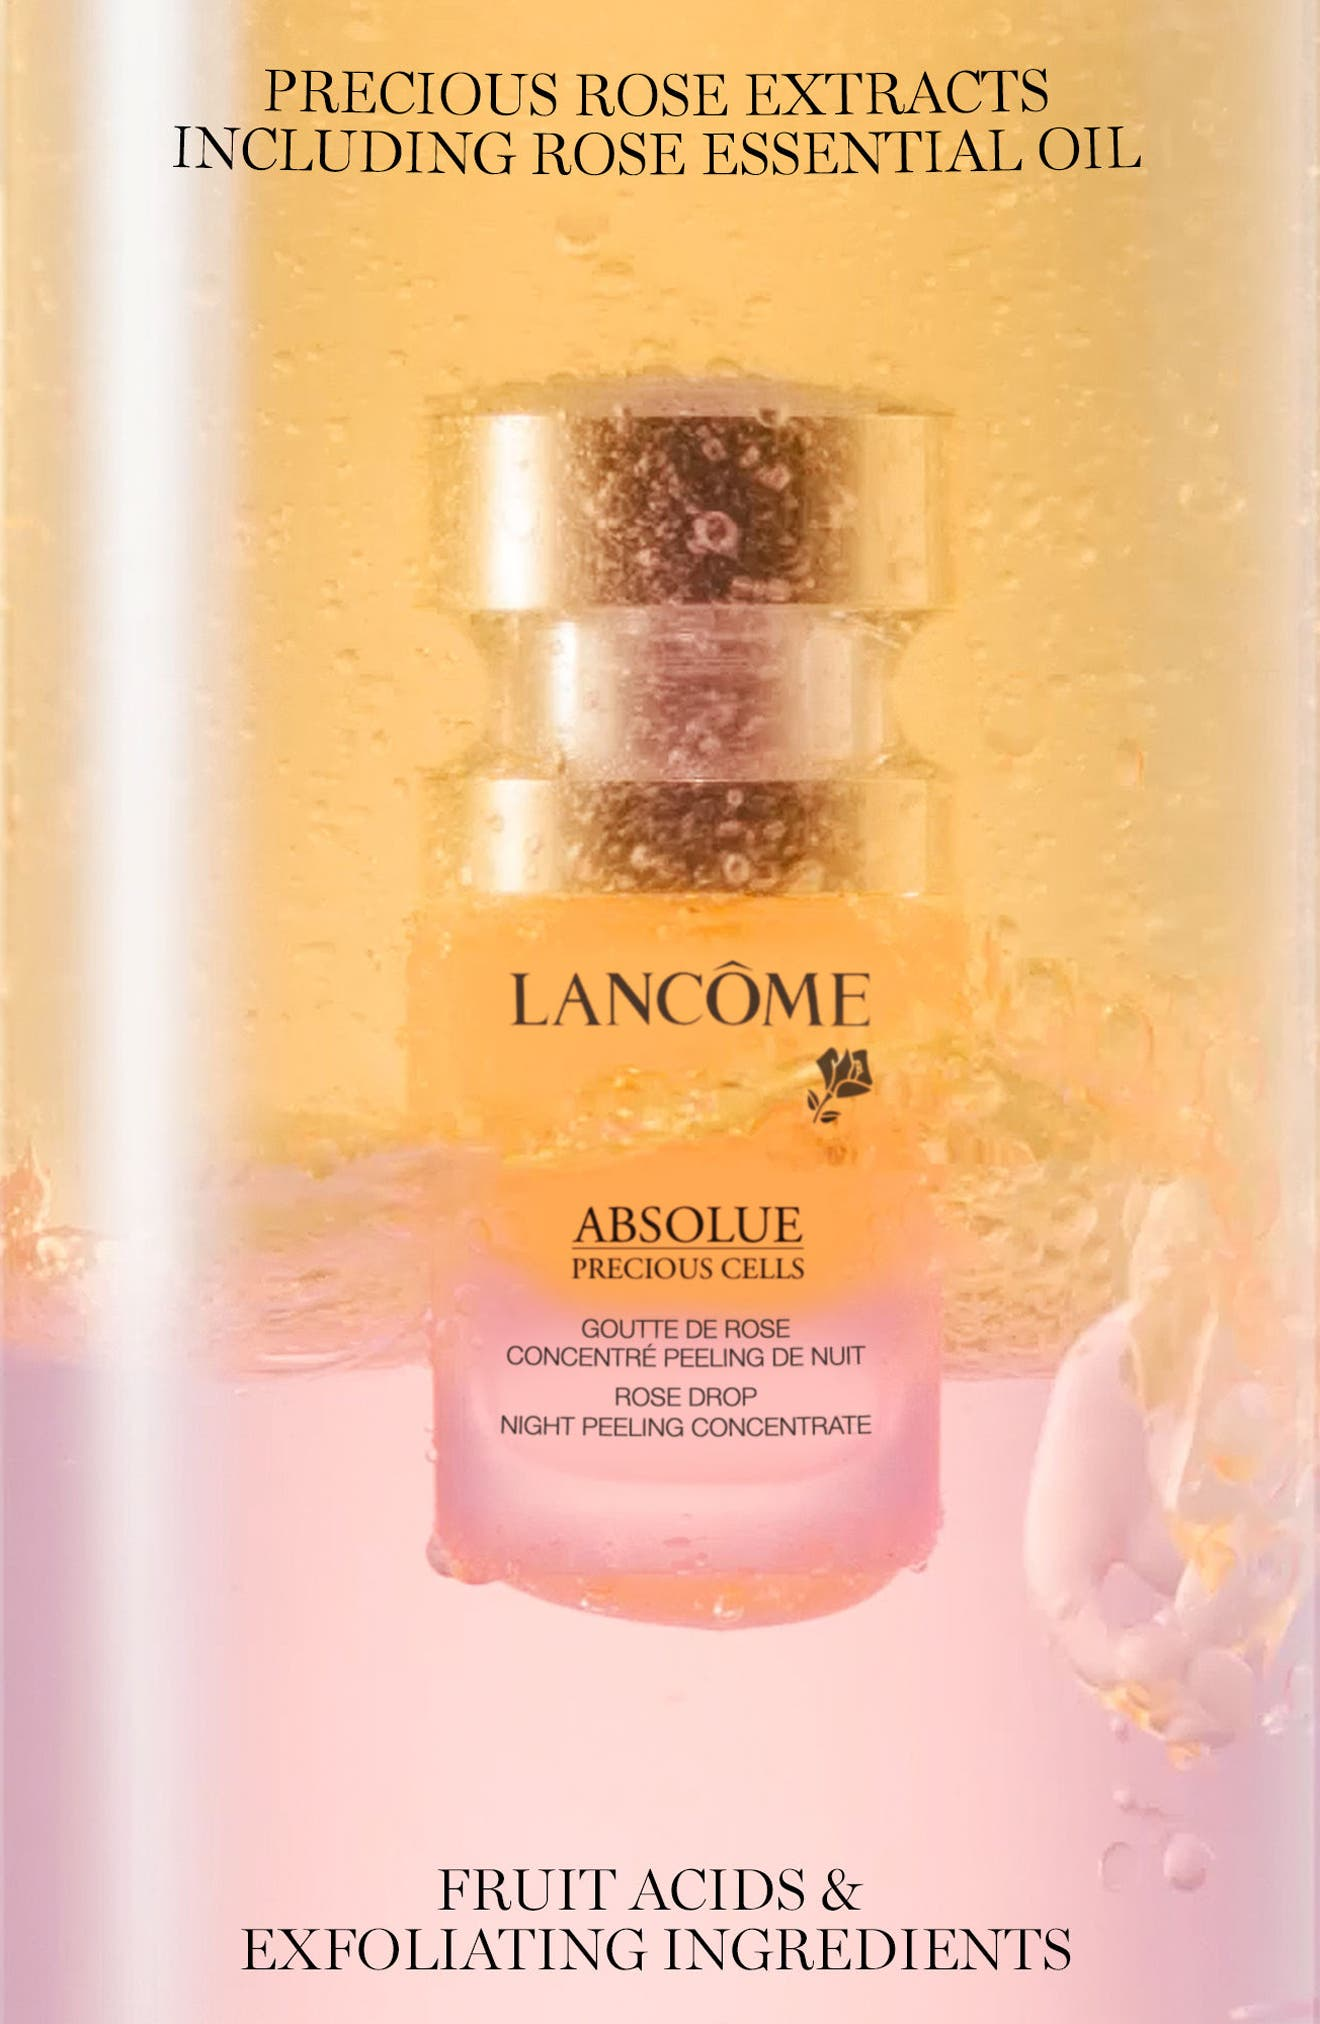 Absolue Precious Cells Rose Drop Night Peeling Concentrate,                             Alternate thumbnail 2, color,                             No Color